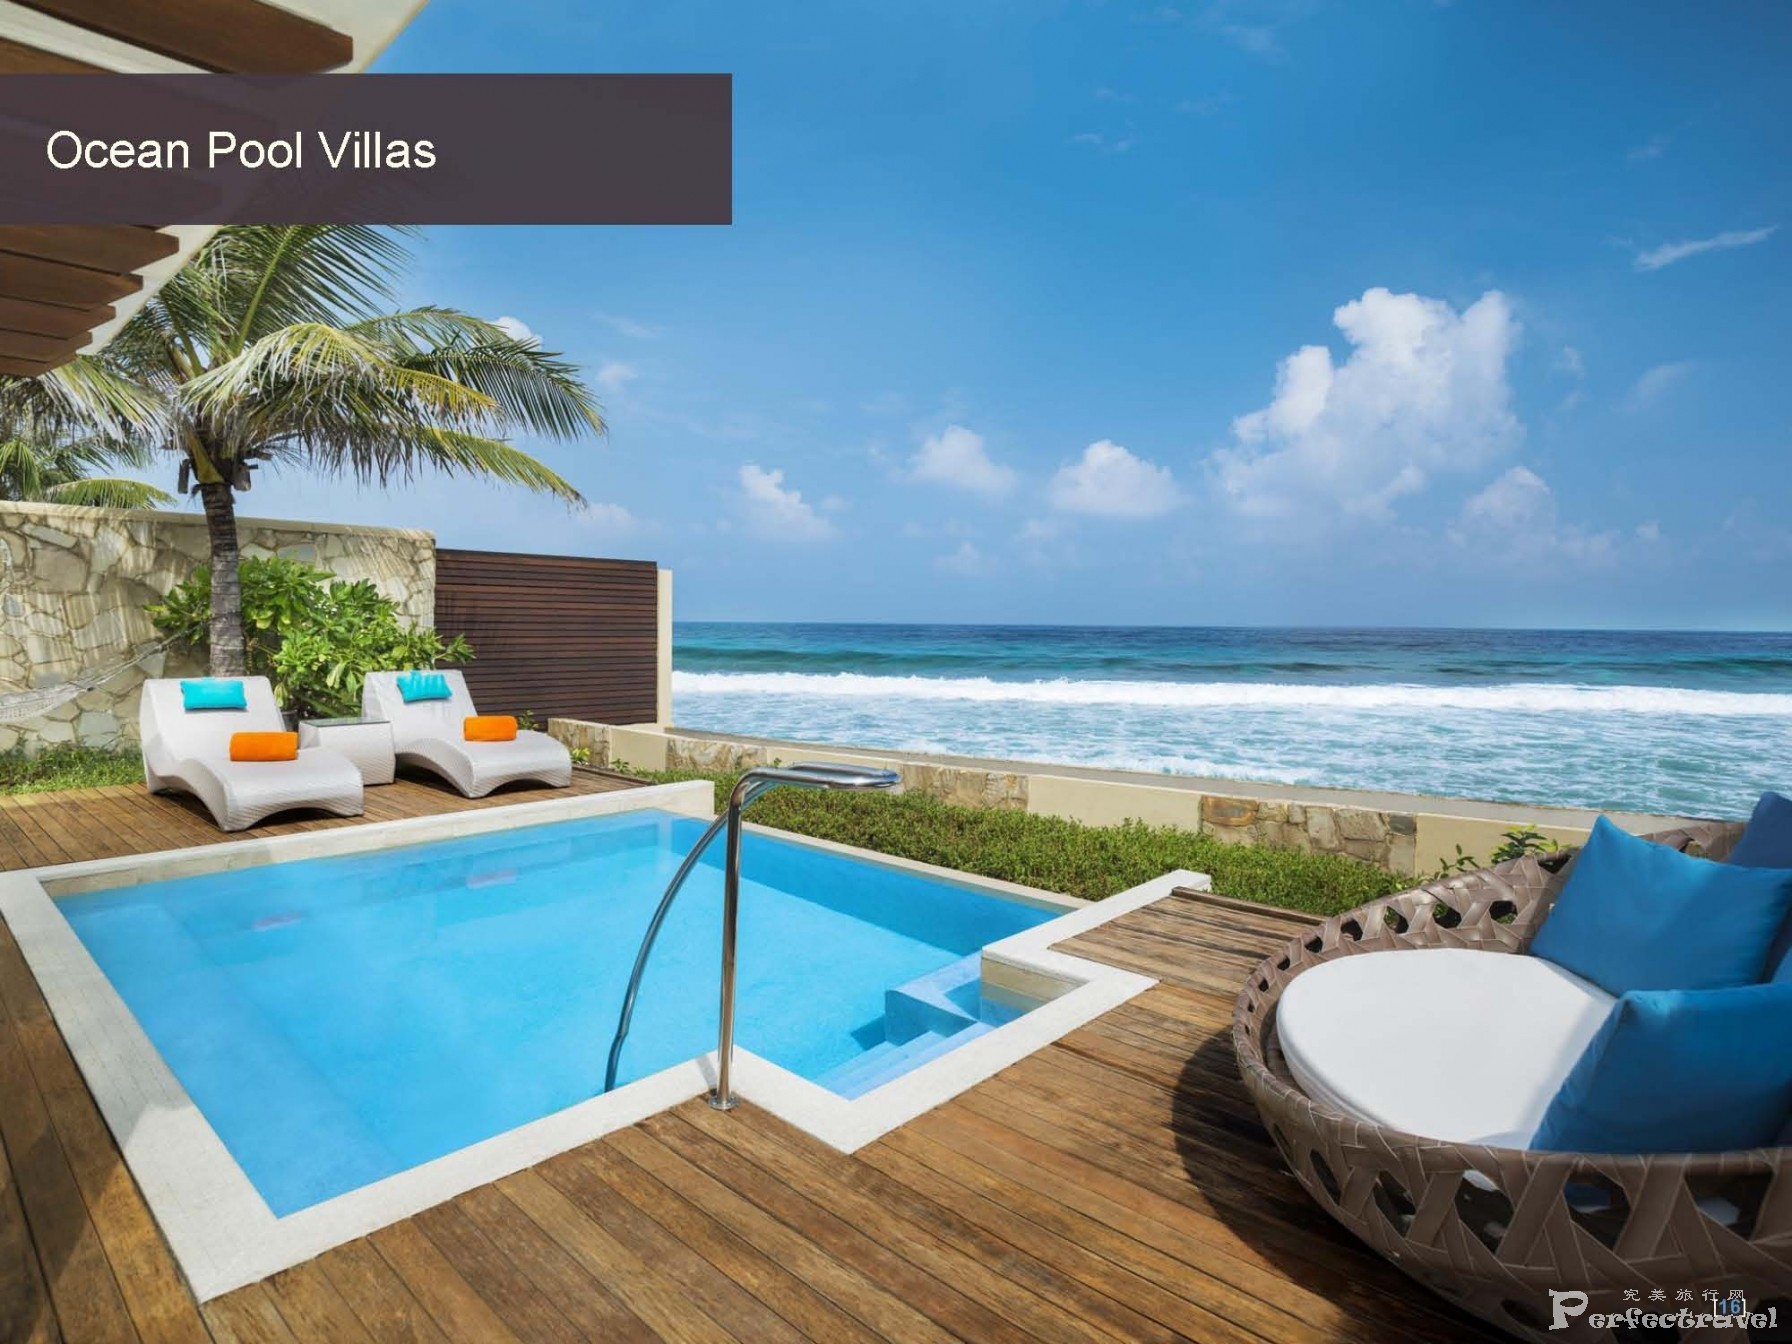 Sheraton Maldives - Overview Presentation 2015_Page_16.jpg